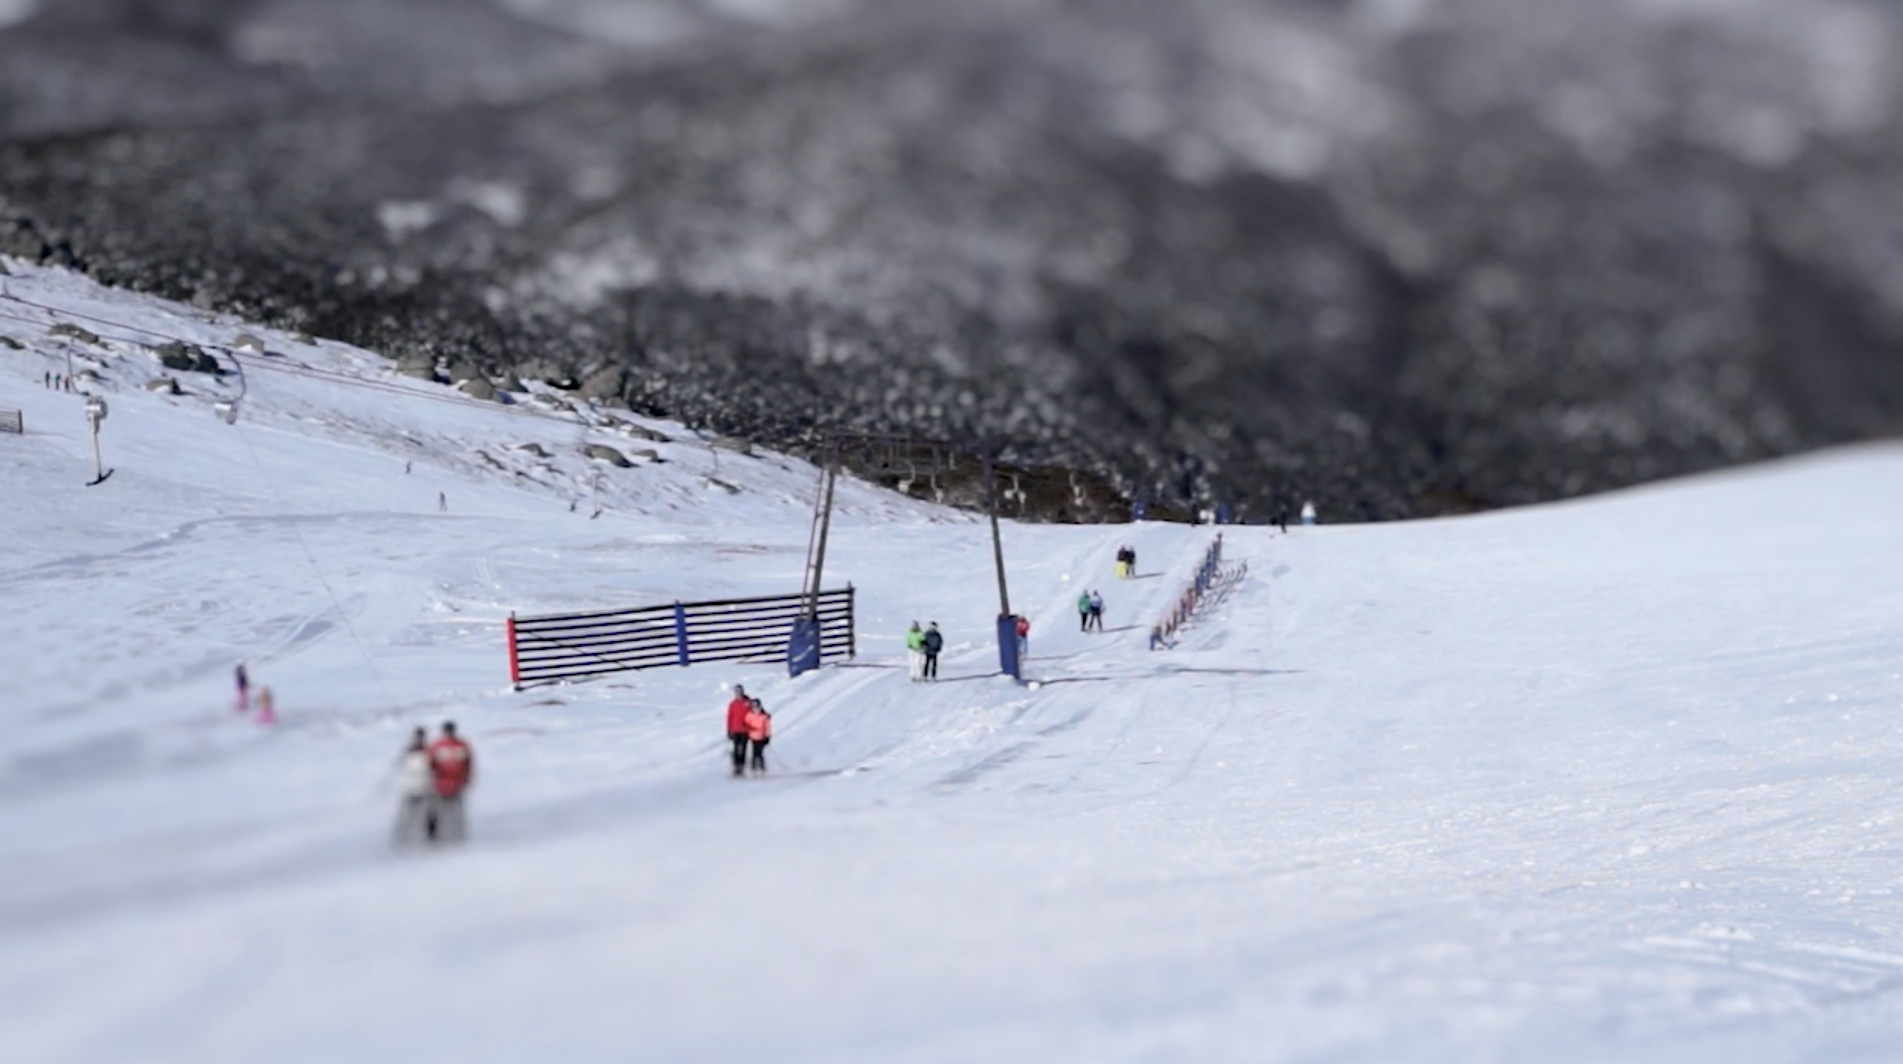 OUR WINTER PLAYGROUND - TOURISM – THREDBO NSW